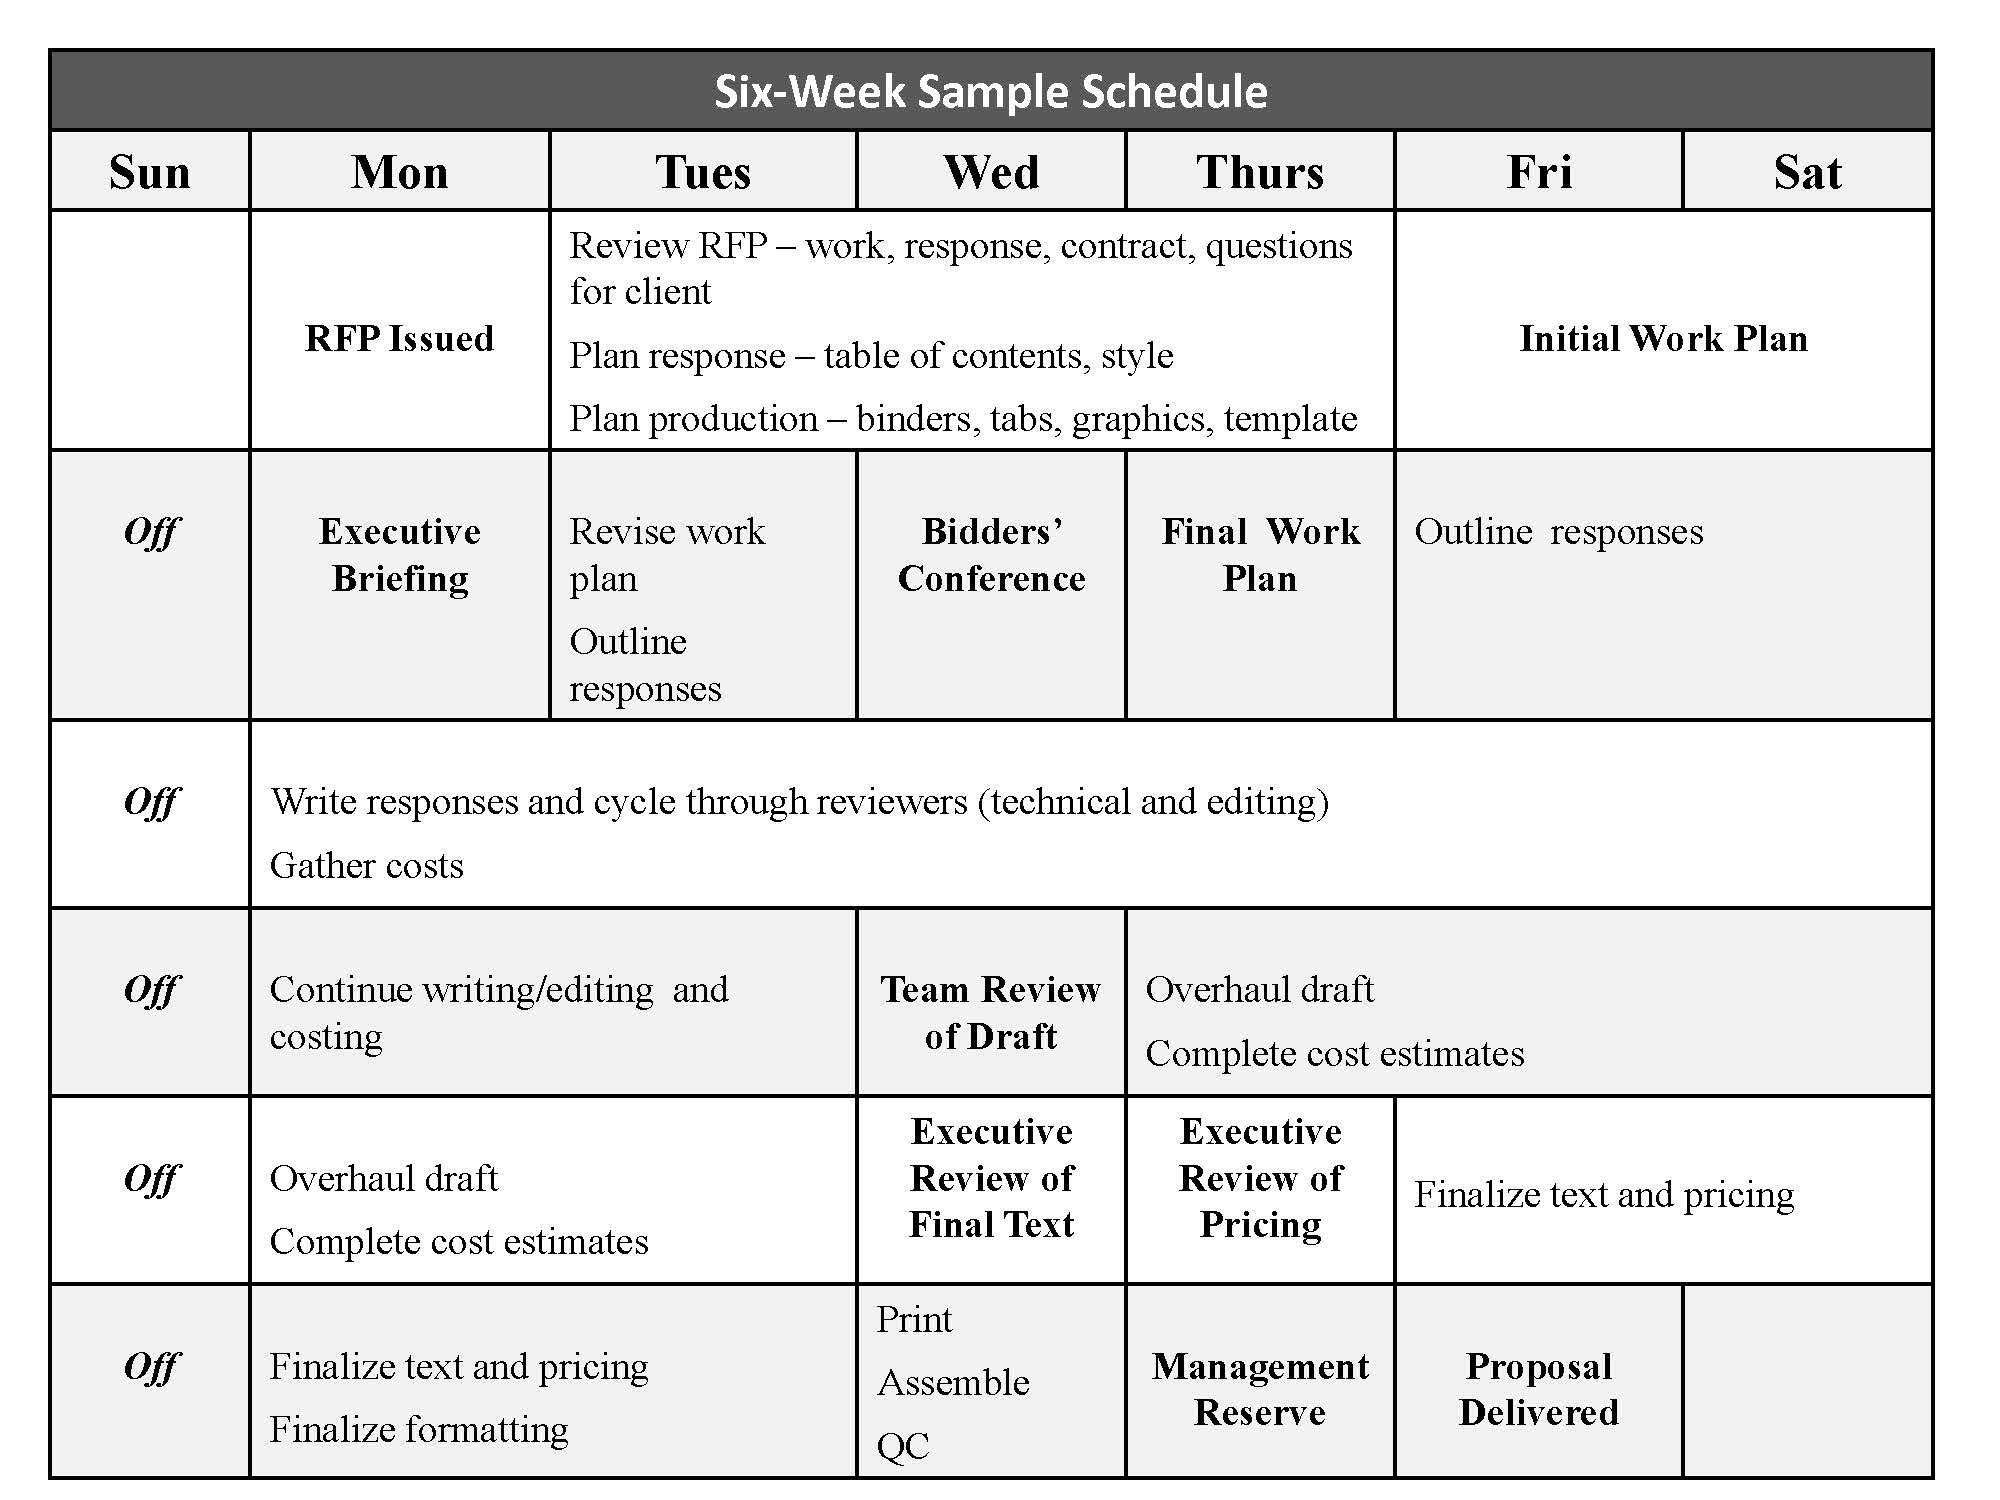 Sample Six Week Schedule Proposal Land